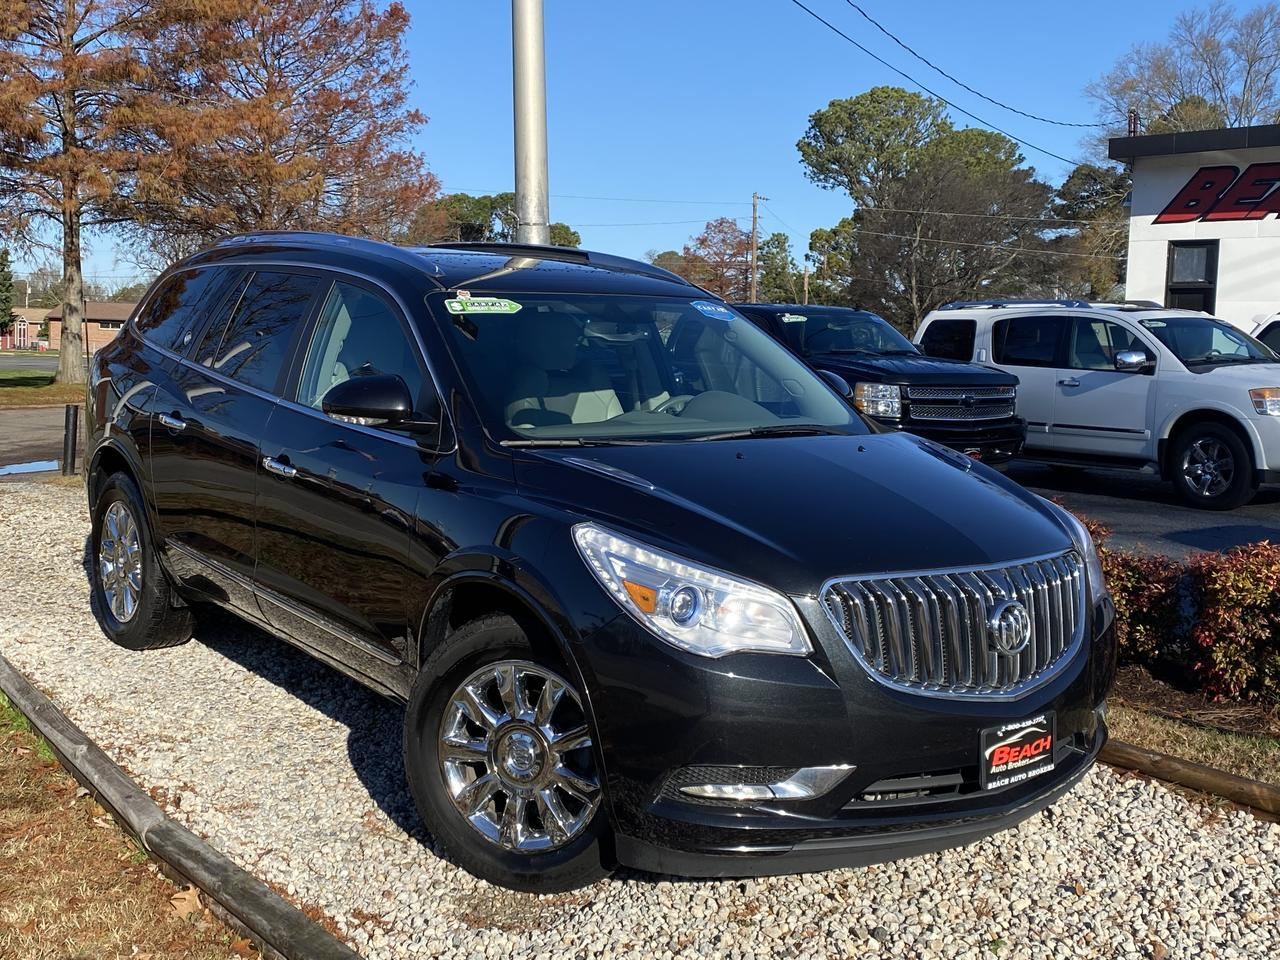 2015 BUICK ENCLAVE WARRANTY, LEATHER, SUNROOF, HEATED SEATS, 3RD ROW, BACKUP CAM, PARKING SENSORS, CLEAN CARFAX! Norfolk VA